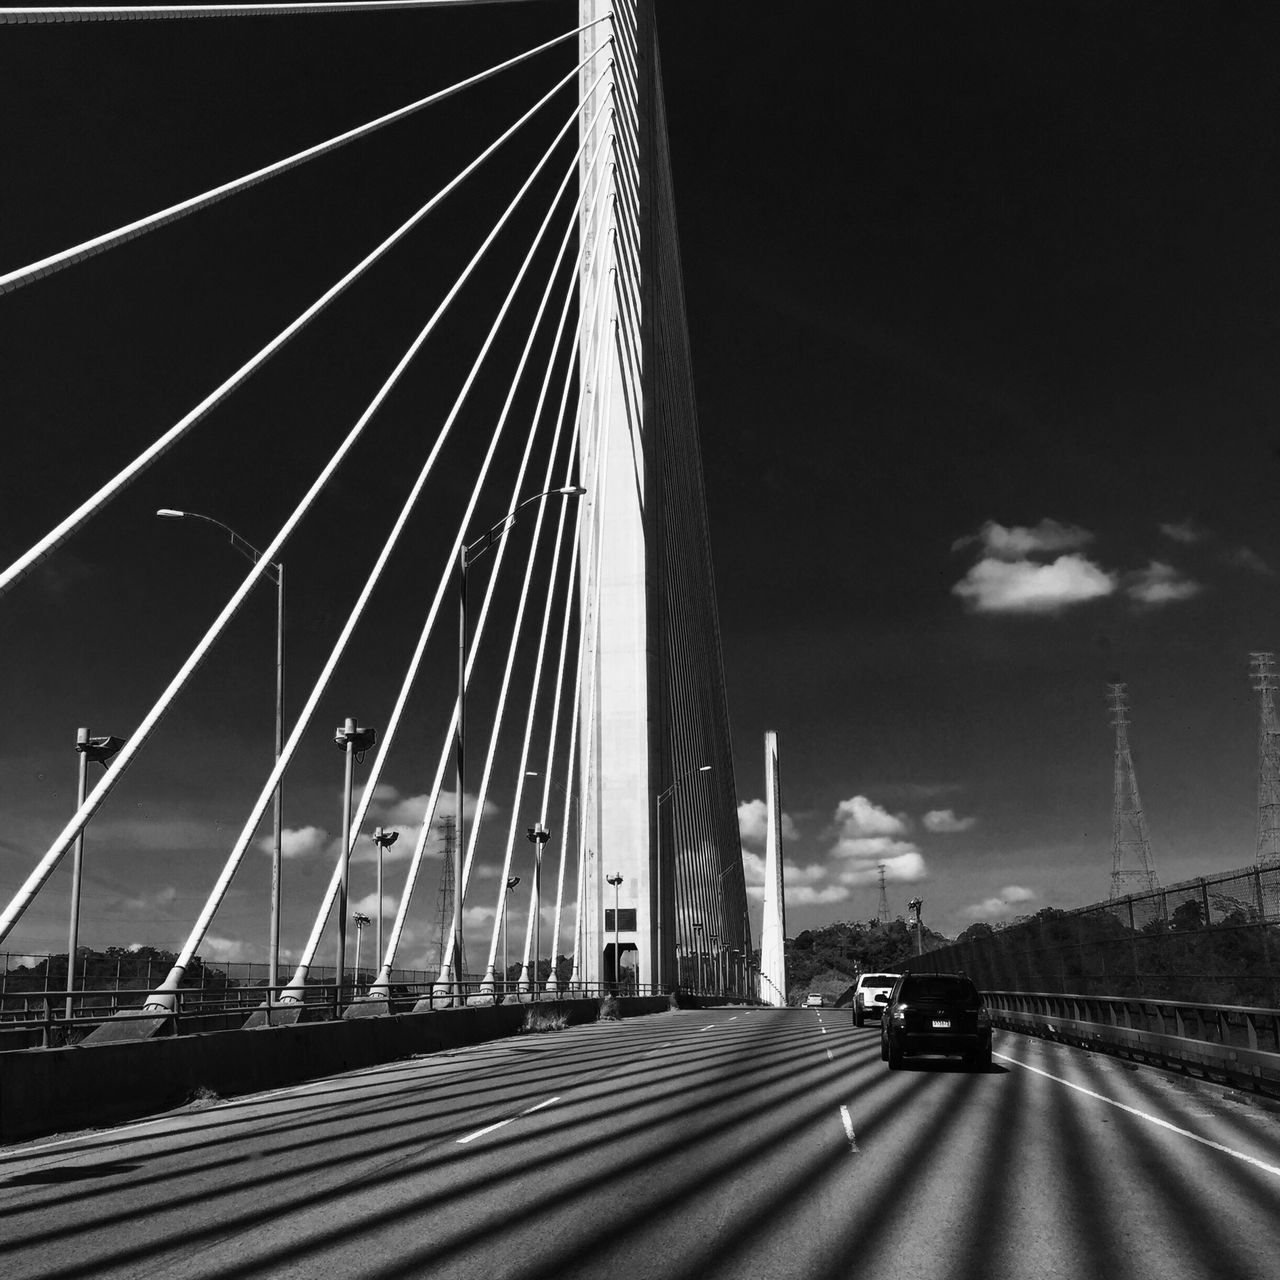 Shadows Transportation Sky Car Built Structure Bridge - Man Made Structure Road Architecture Land Vehicle Connection The Way Forward City Building Exterior Suspension Bridge Outdoors No People Day Monochrome Monochromatic Art IPhoneography Trip Roadtrip